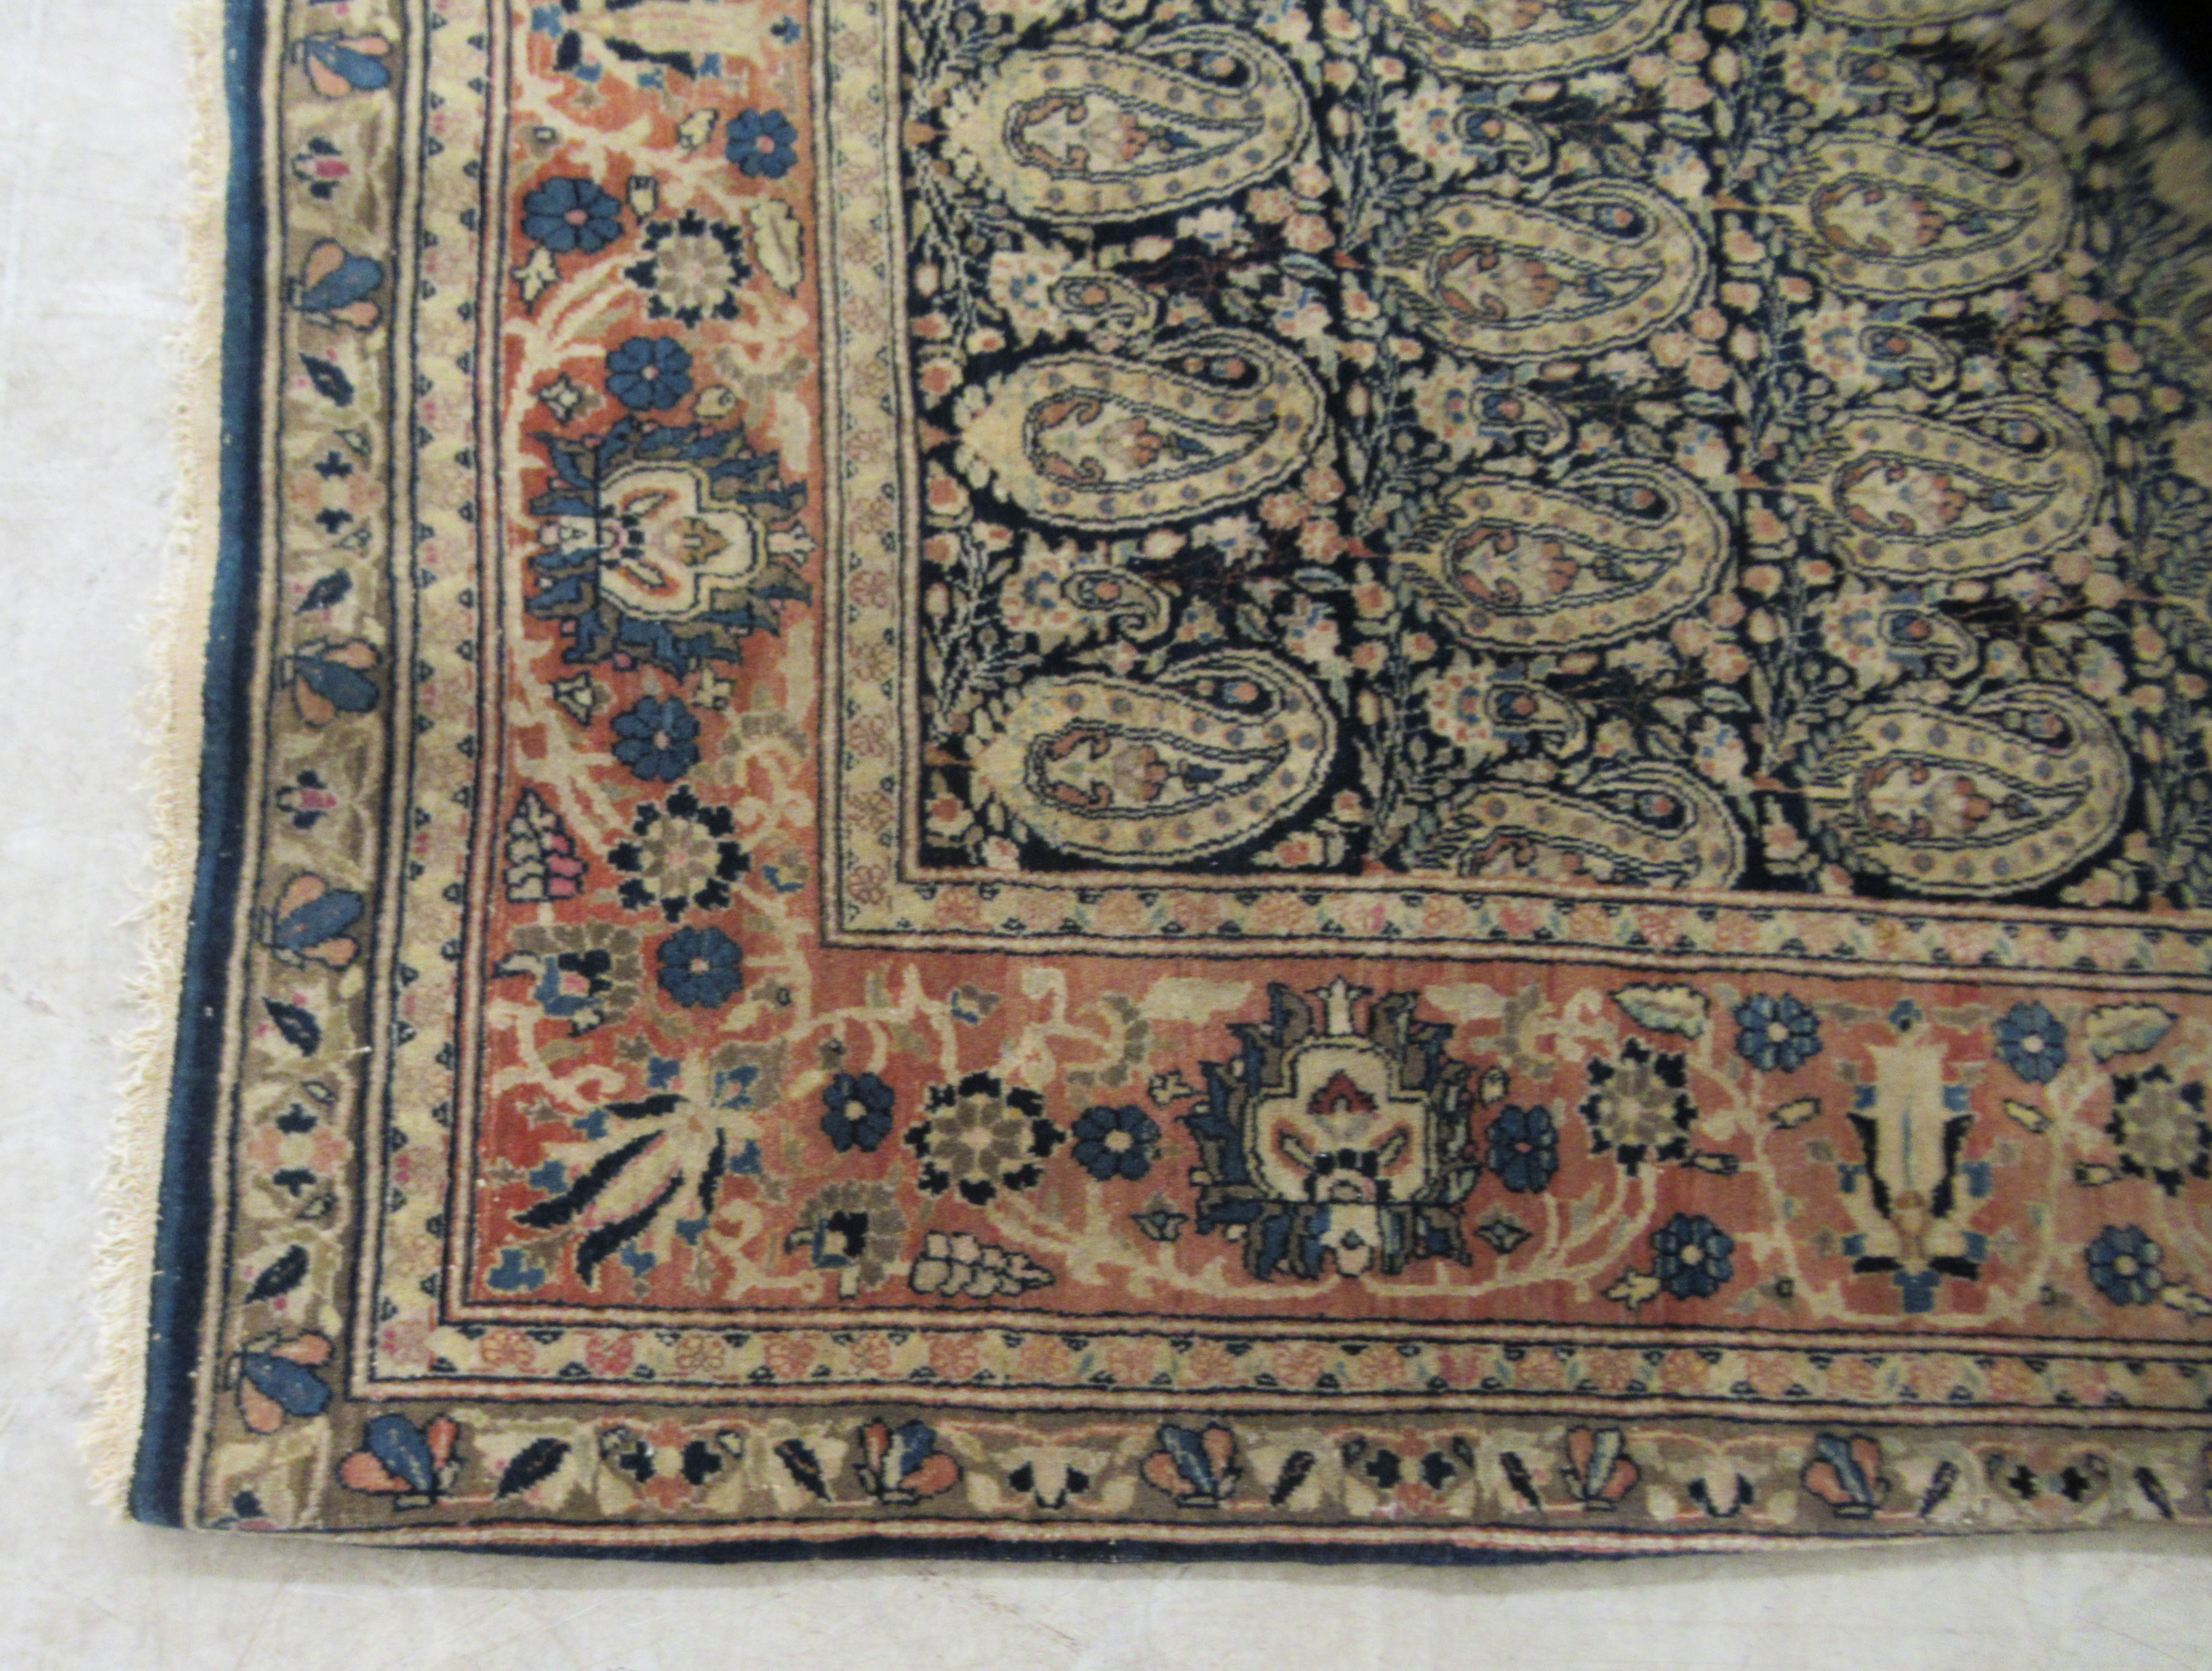 A Persian rug decorated with repeating stylised designs, bordered by floral and foliage, on a - Image 3 of 4